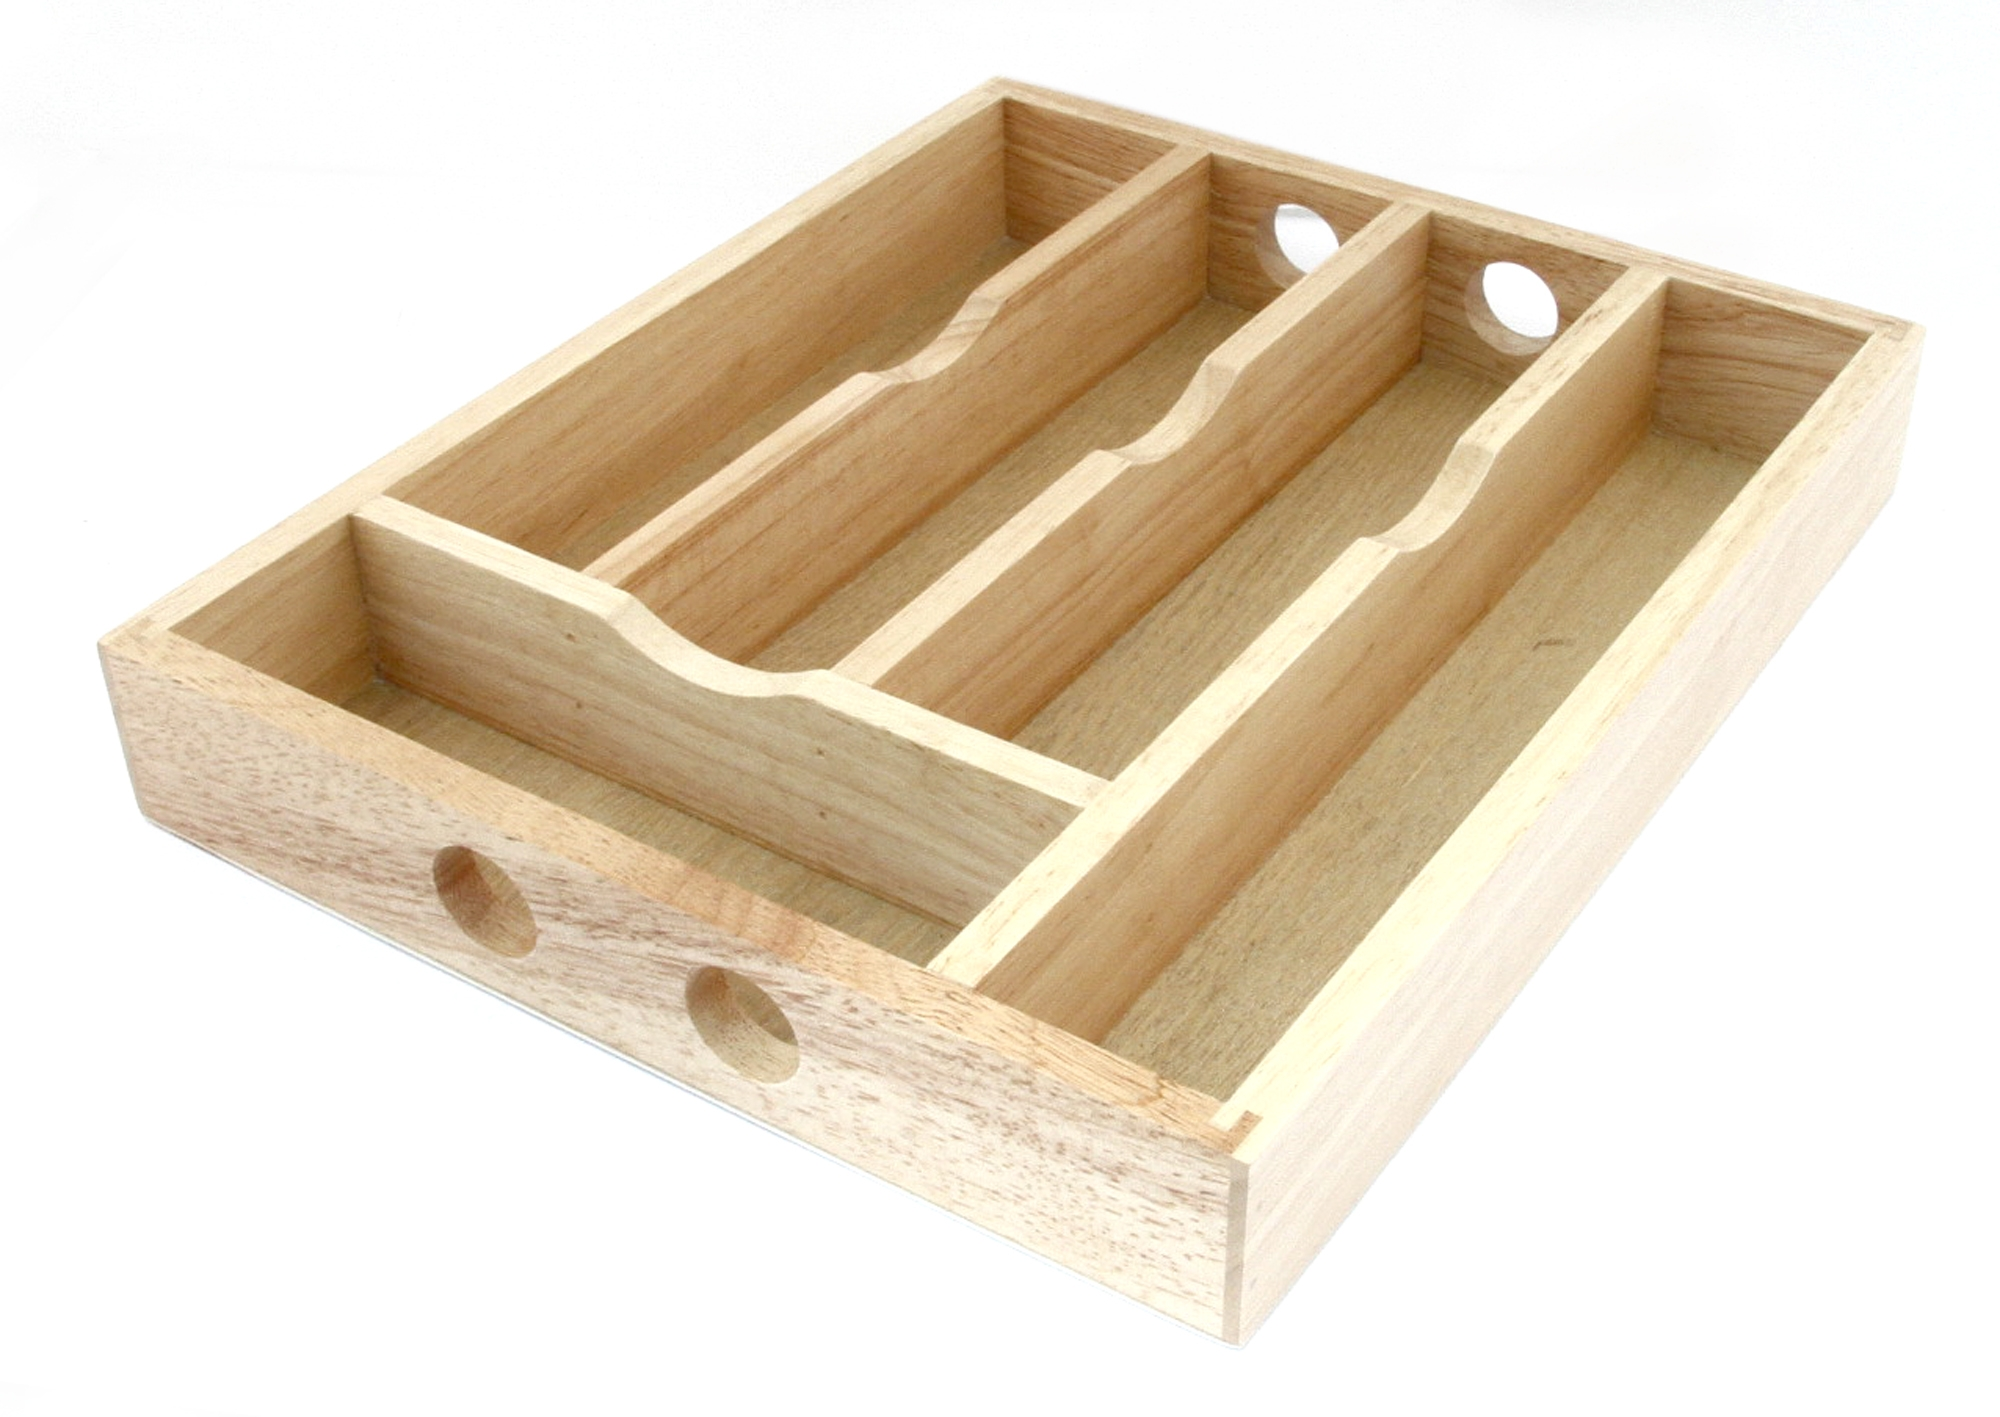 Flatware wooden utensil caddy for your compact utensil ideas